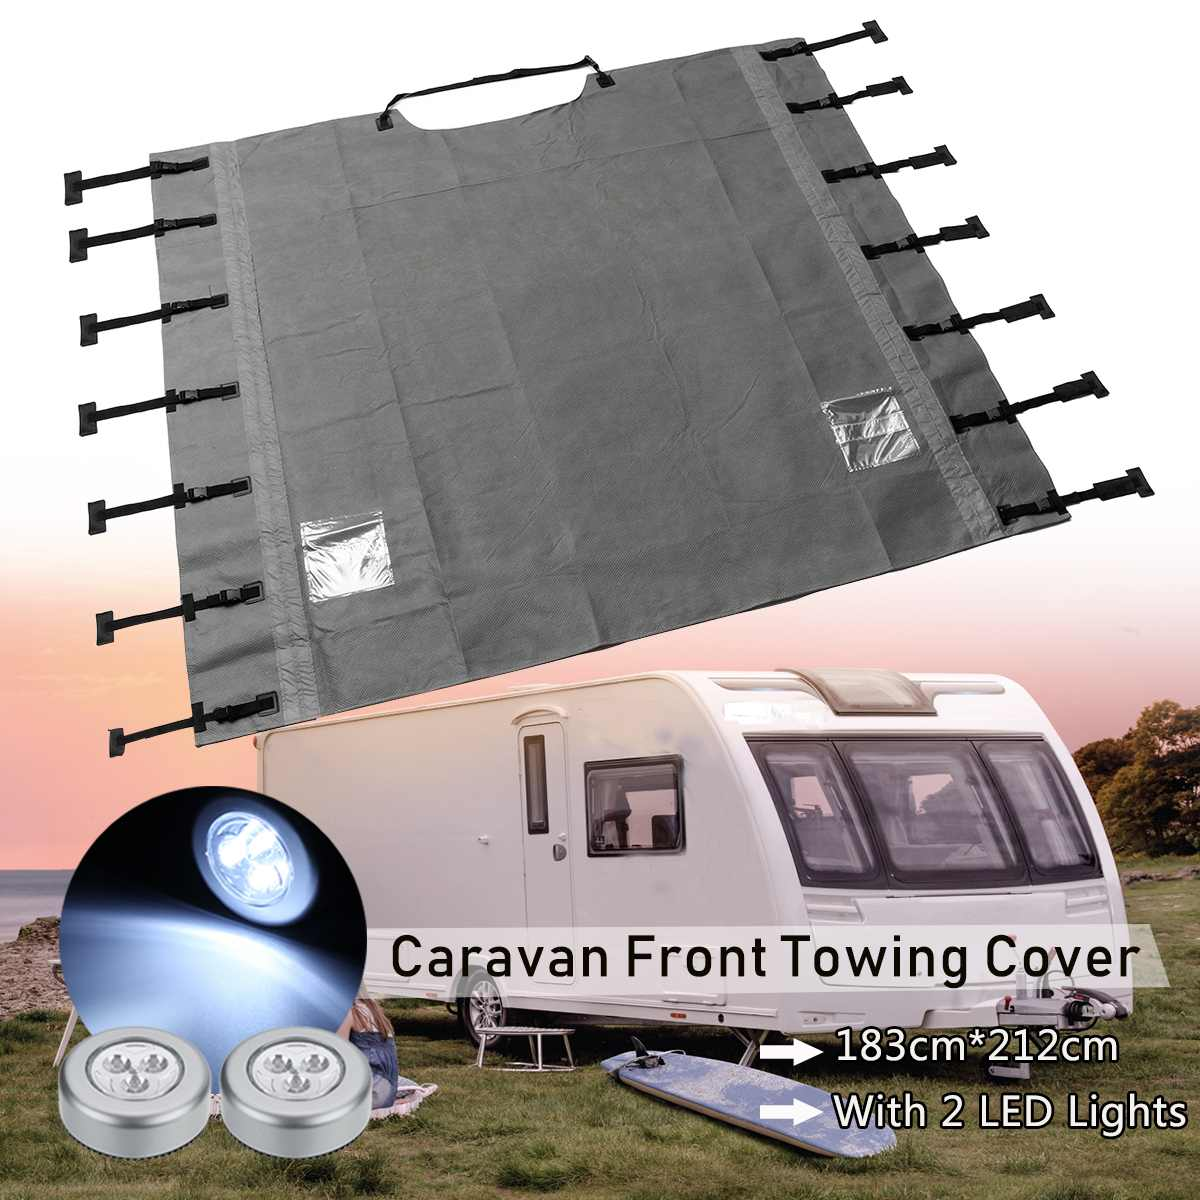 Universal Caravan Front Towing Cover Waterproof Dustproof with LED Lights for RV Motorhome